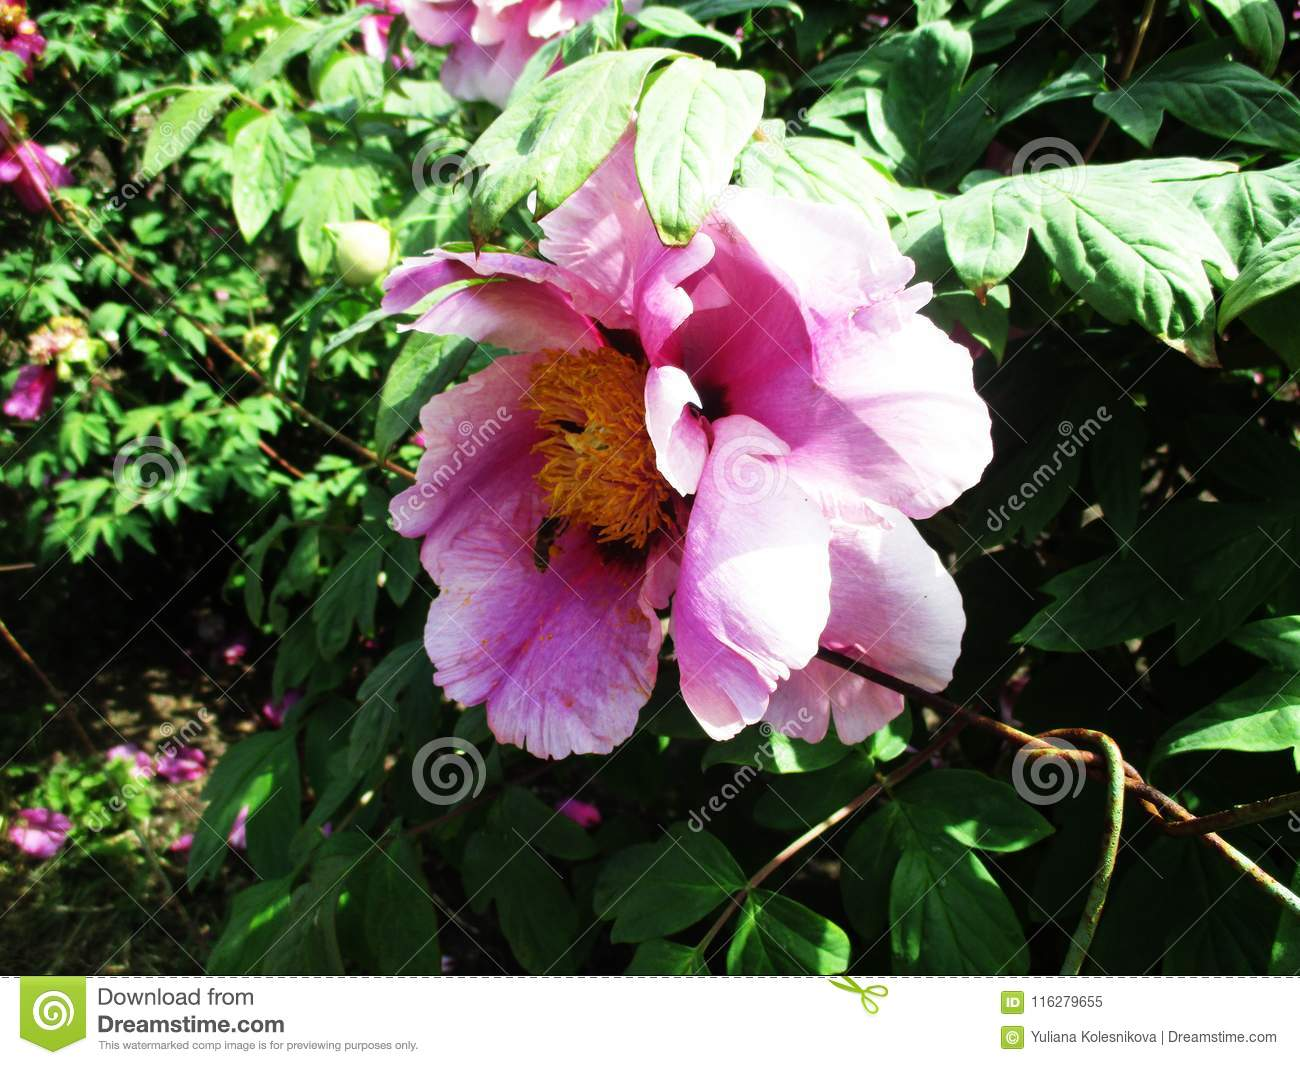 Rare beautiful pink flowers blooming in the botanical garden stock rare beautiful pink flowers blooming in the botanical garden izmirmasajfo